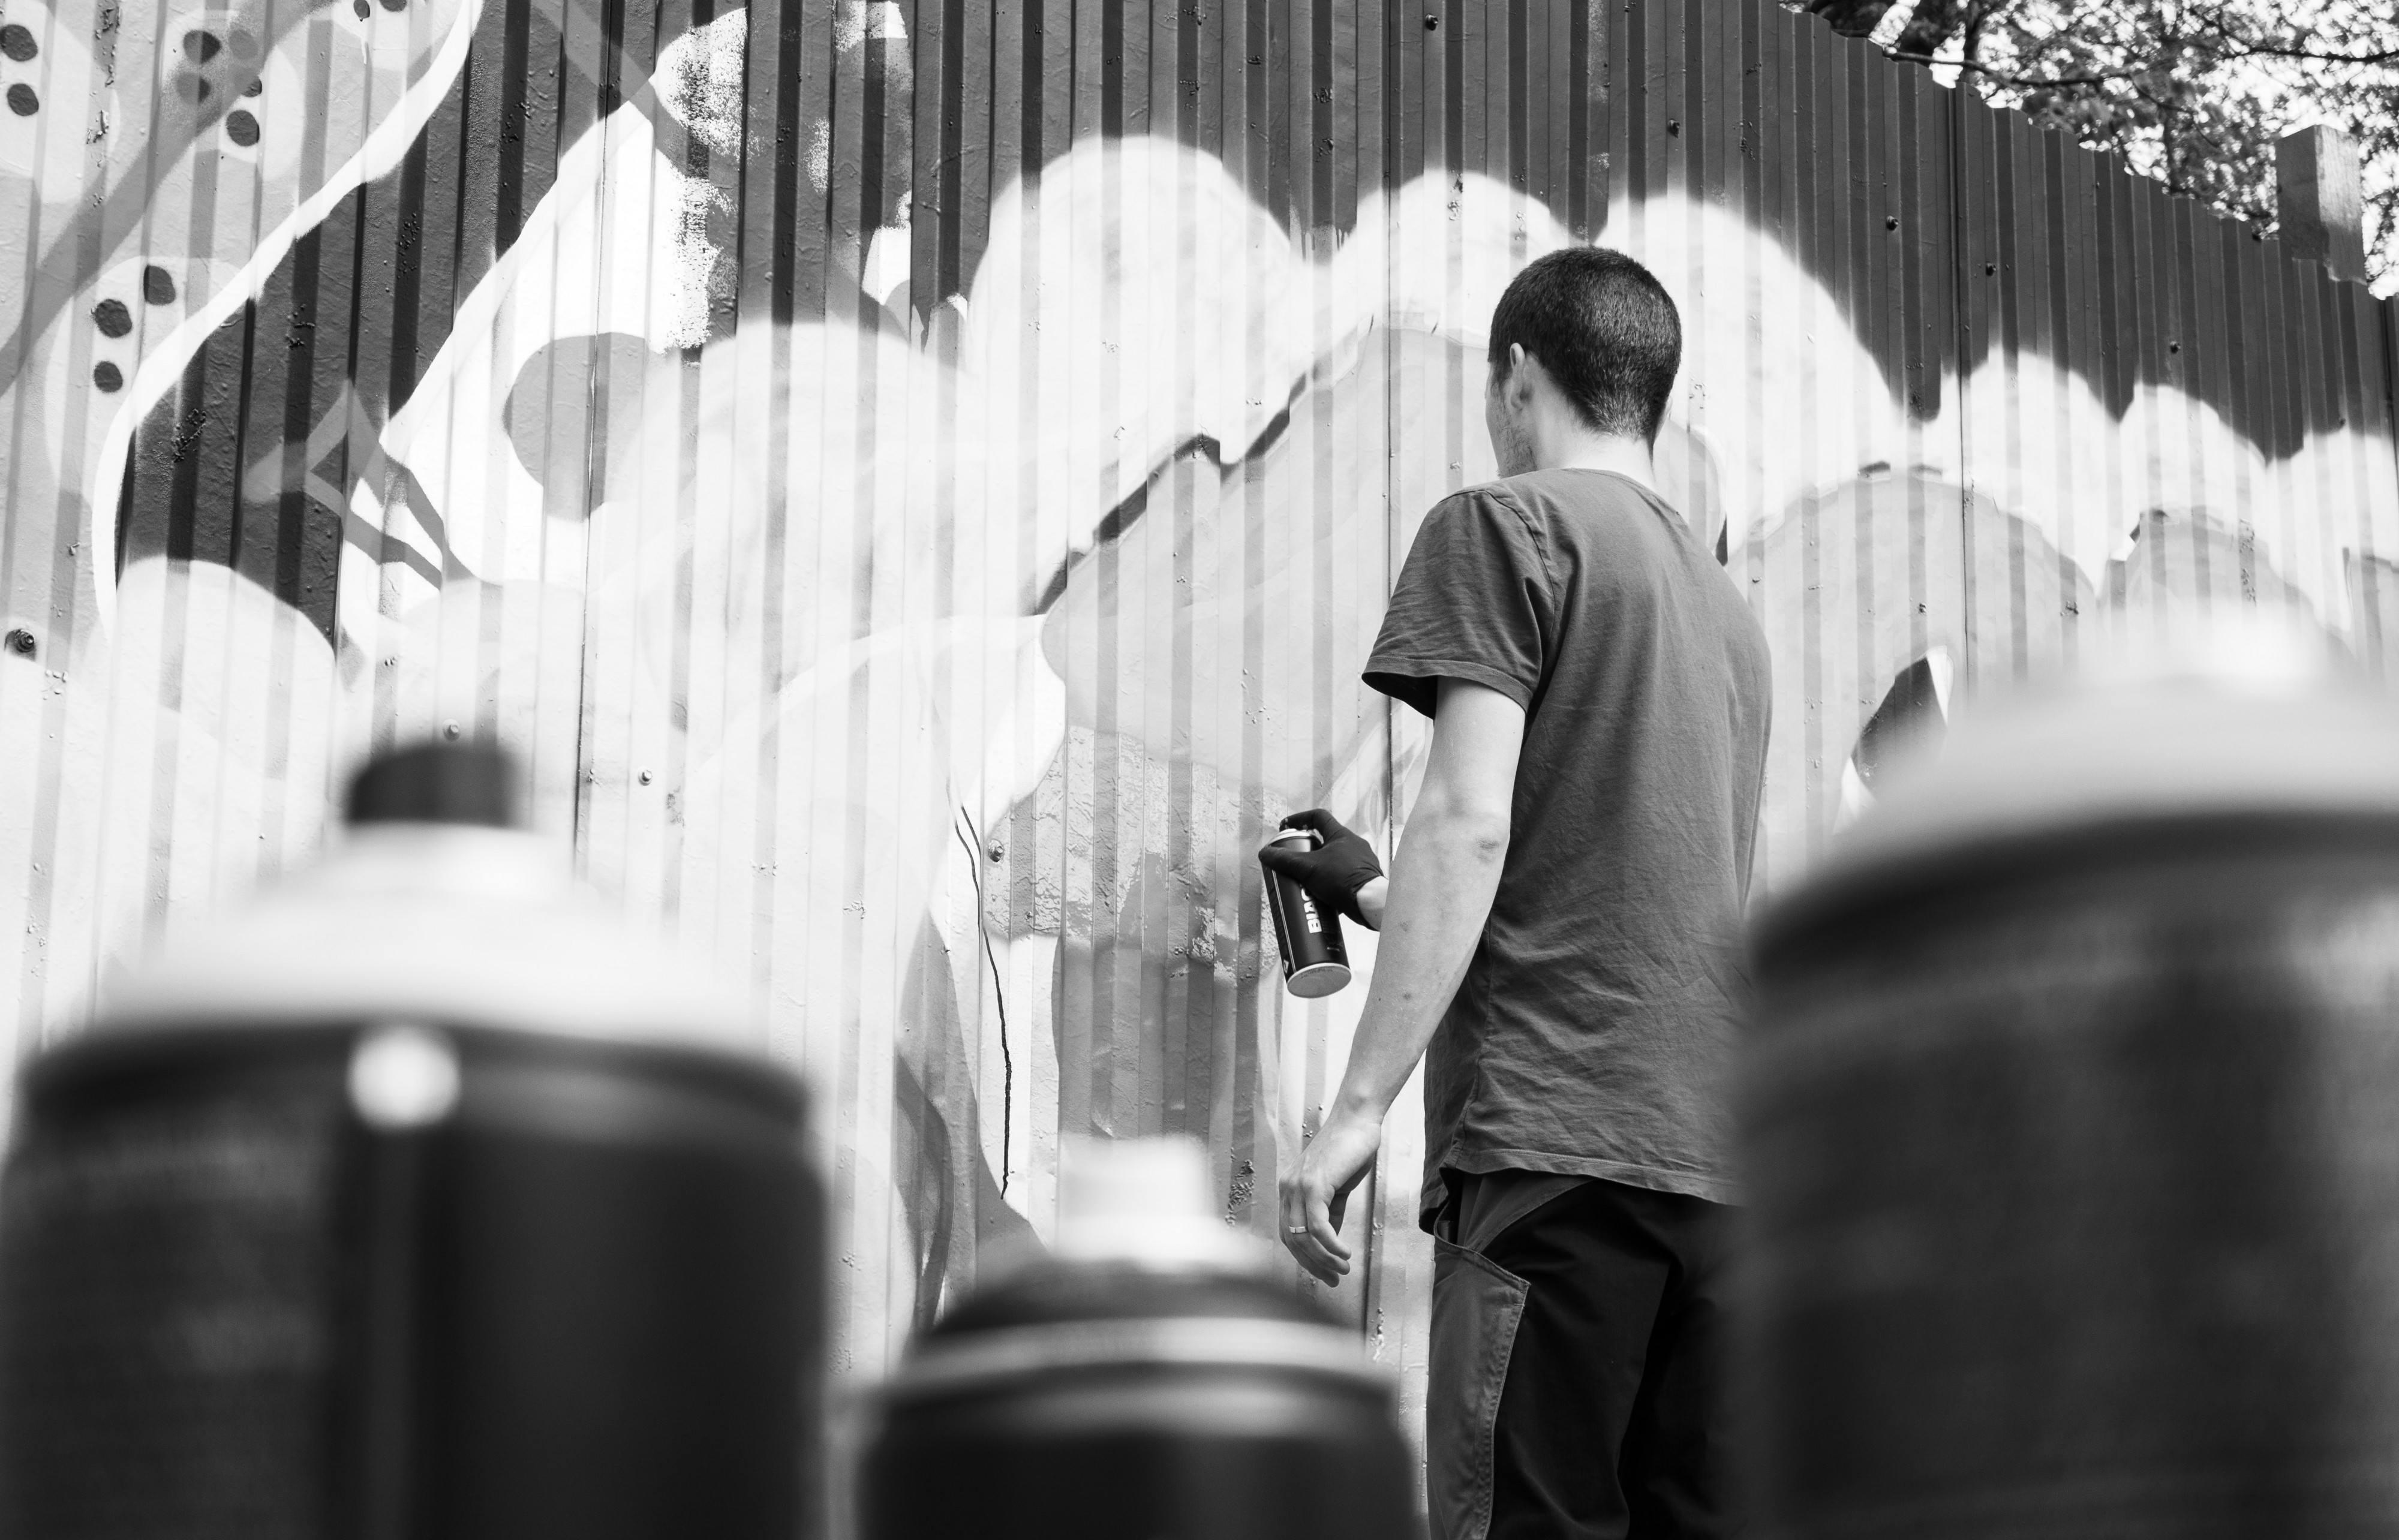 Photograph of a man spray painting a wall